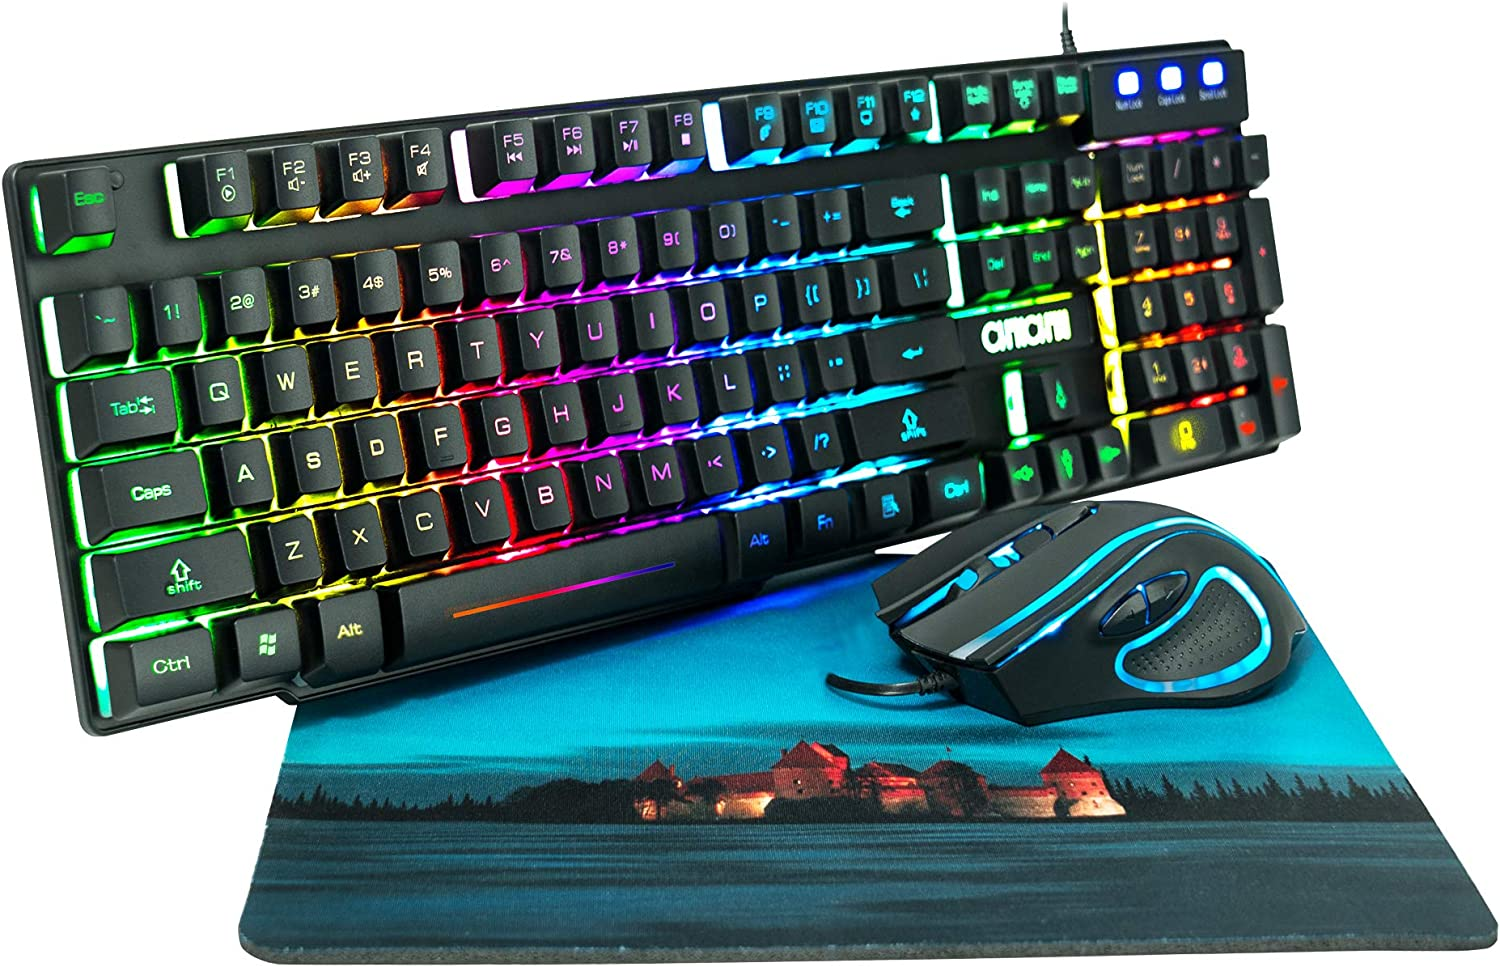 RGB Gaming Keyboard and Mouse Combo CHONCHOW 991b Rainbow Led Backlit 7 Colors Office Device Ergonomic Keyboard with Mice 3200 DPI Adjustable Compatible with PS4/Ps3 Xbox one Windows Mac PC